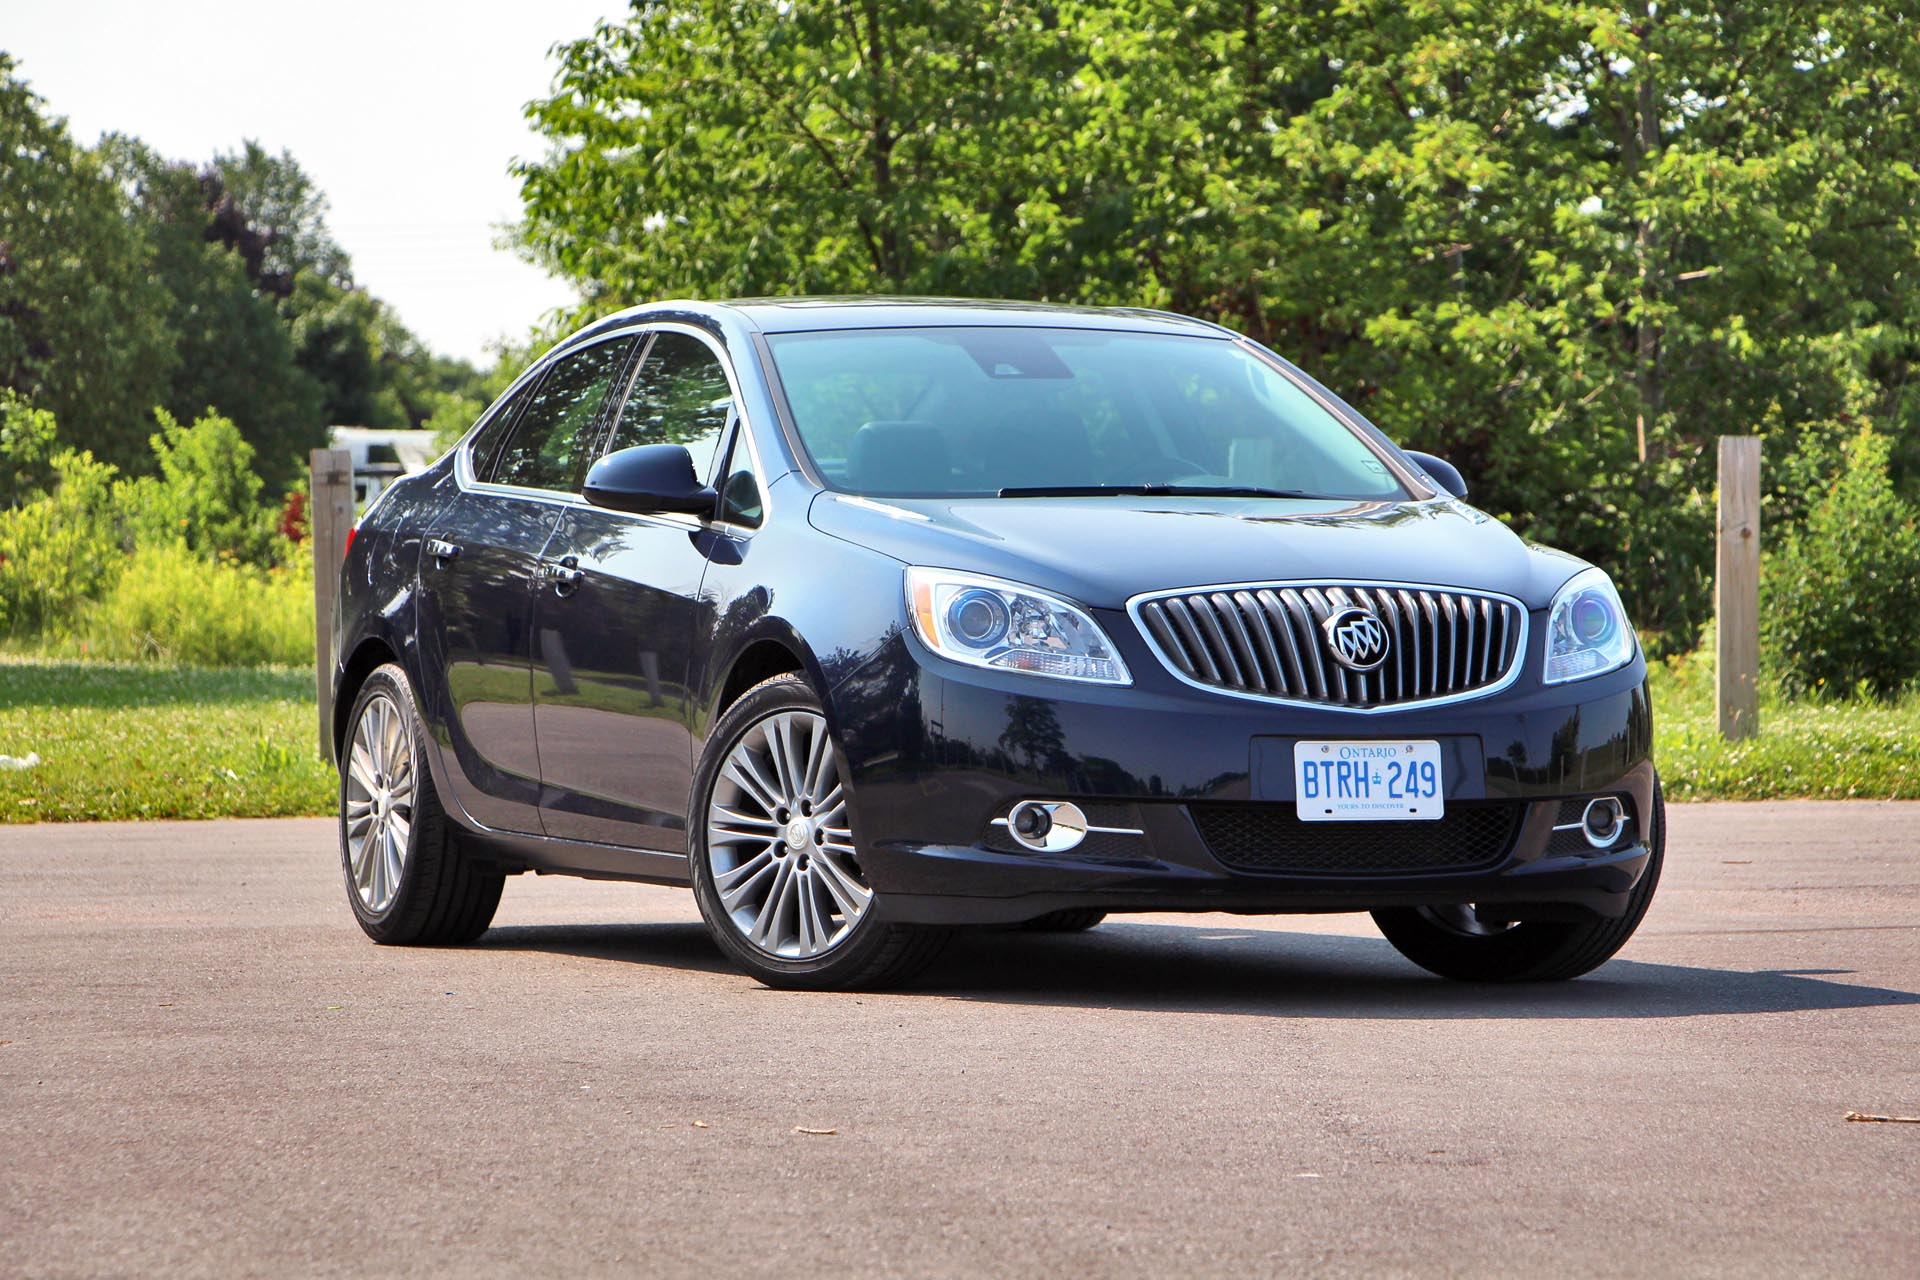 Used Vehicle Review: Buick Verano, 2012-2016